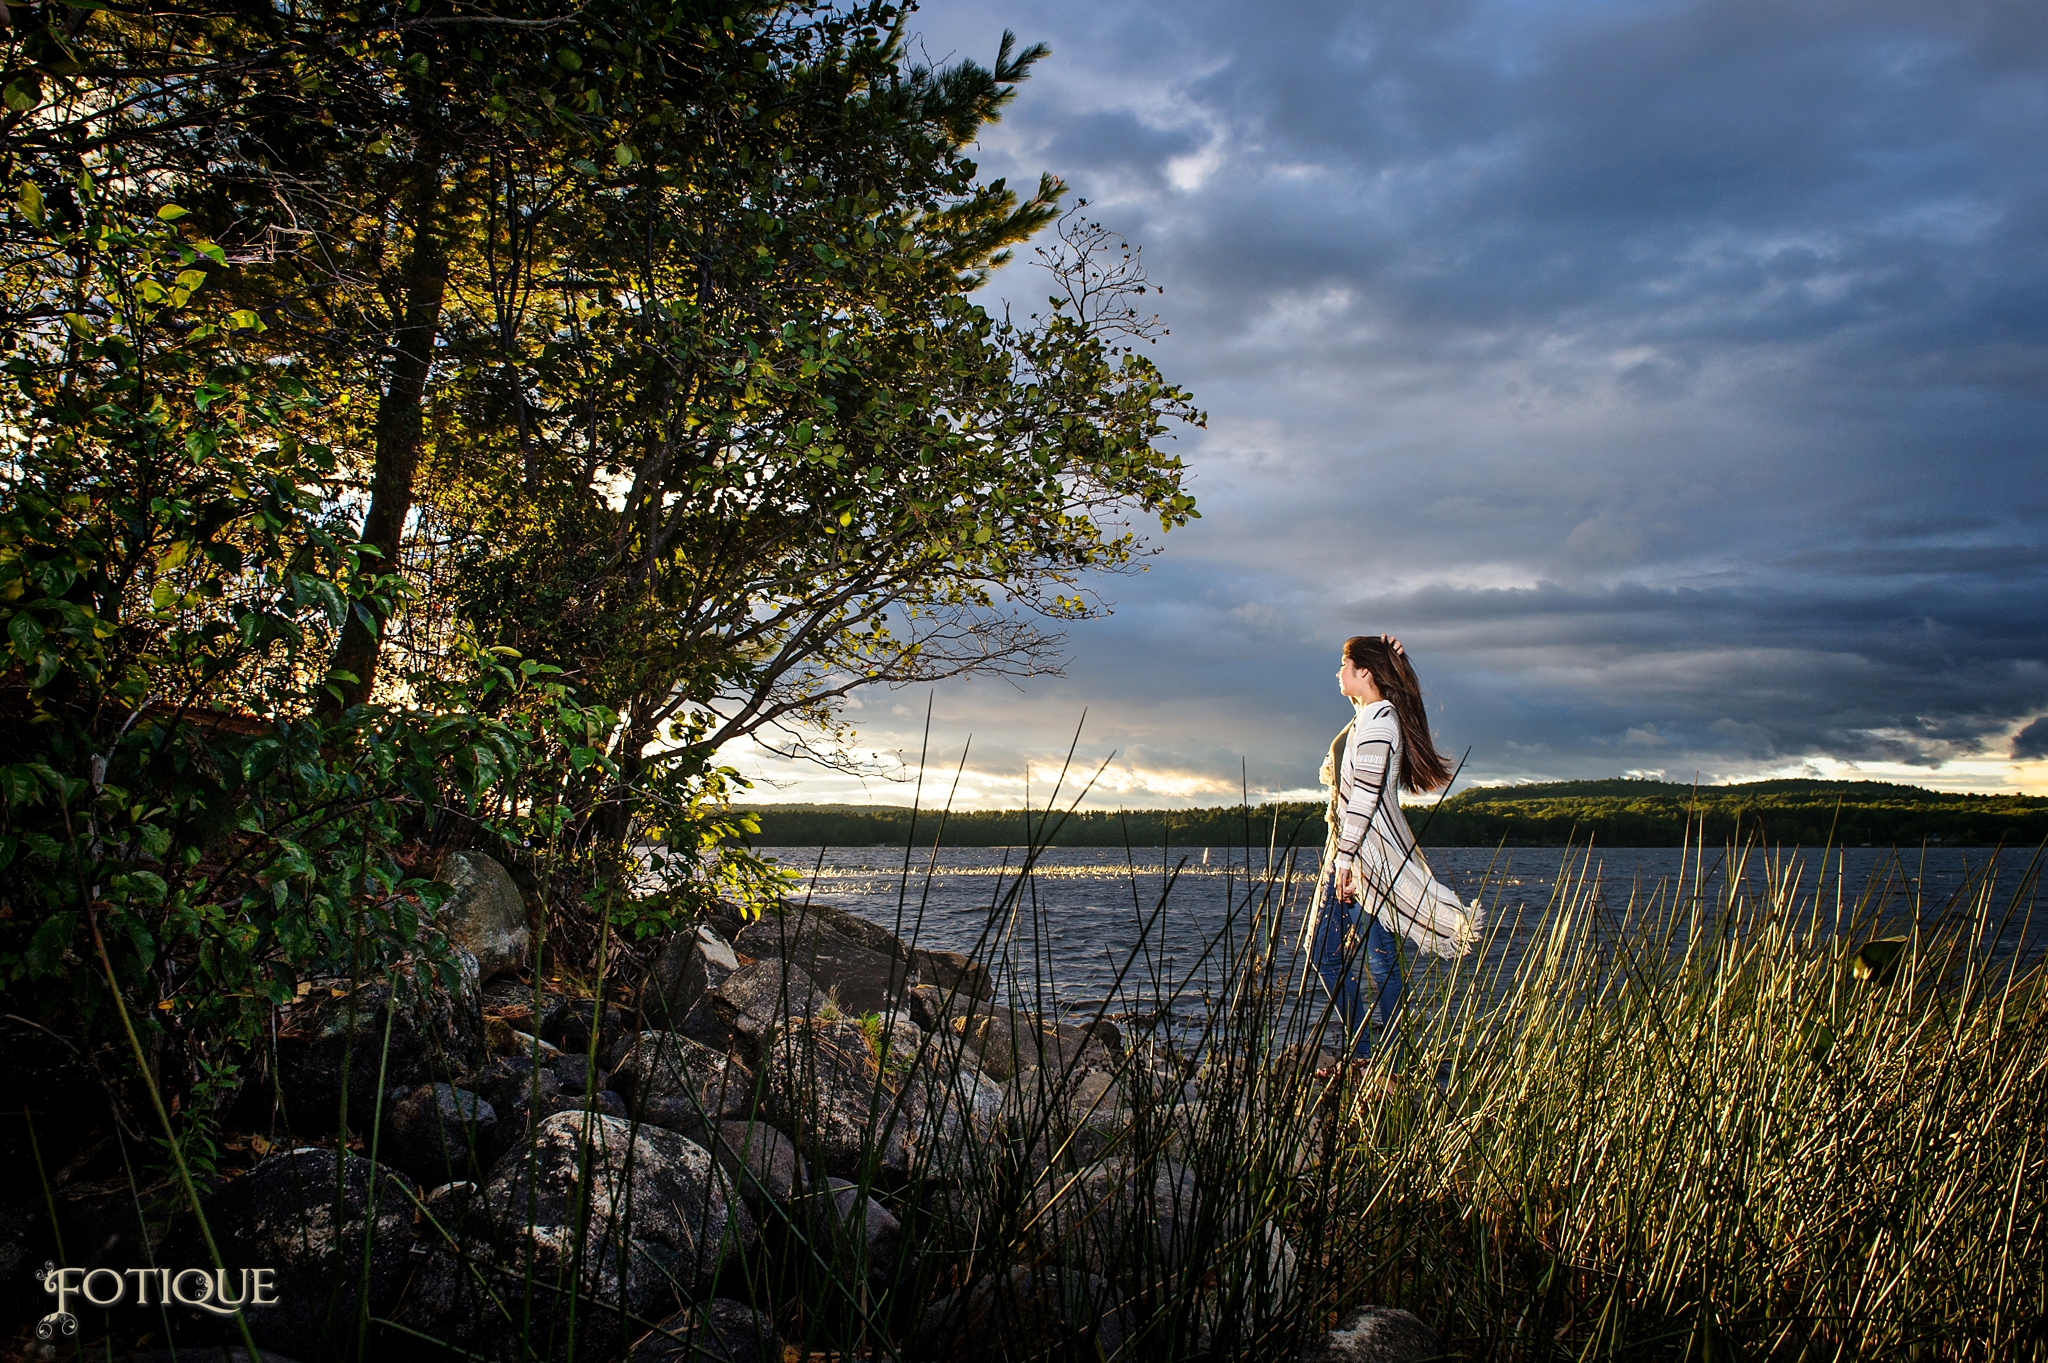 Fotique, Hingham portrait photographer, golden hour, divine light, Sunset pictures, beach pictures, beach, sunset, MA lifestyle photography, senior pictures, Senior Girls, Family Pictures, Hingham MA Photographer, Fashion Shoot for Seniors,  Forrest Pictures